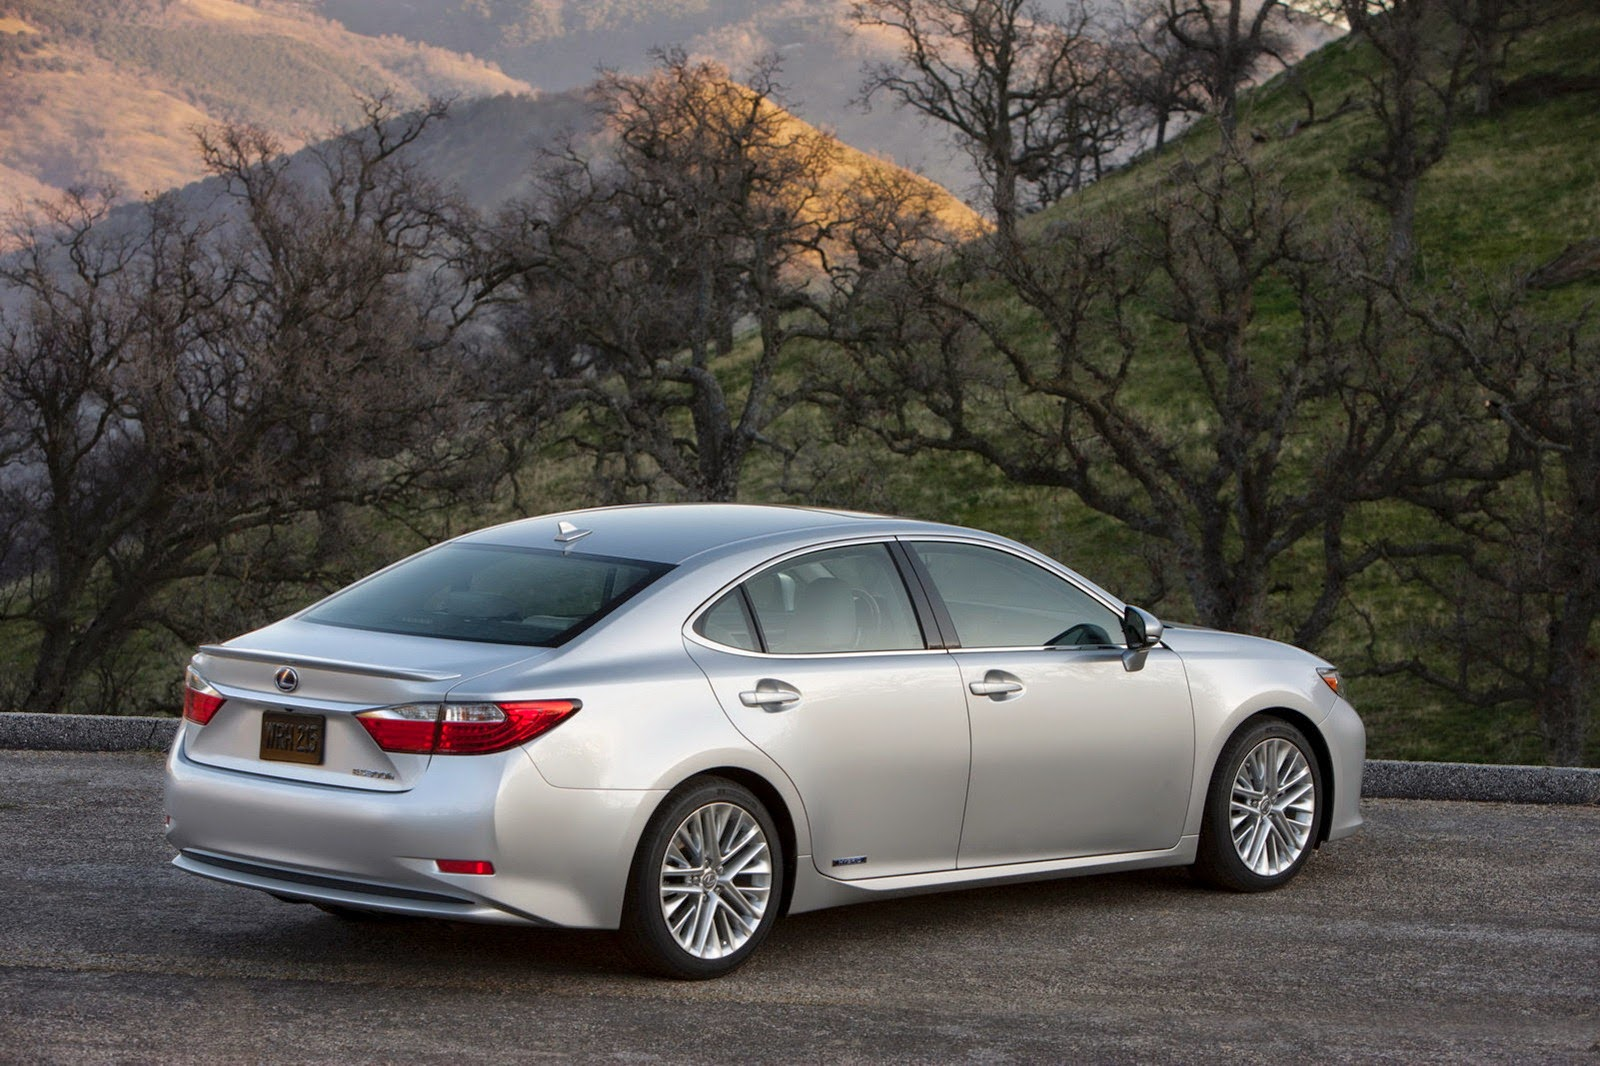 lexus es 350 review and price 2015 net 4 cars. Black Bedroom Furniture Sets. Home Design Ideas